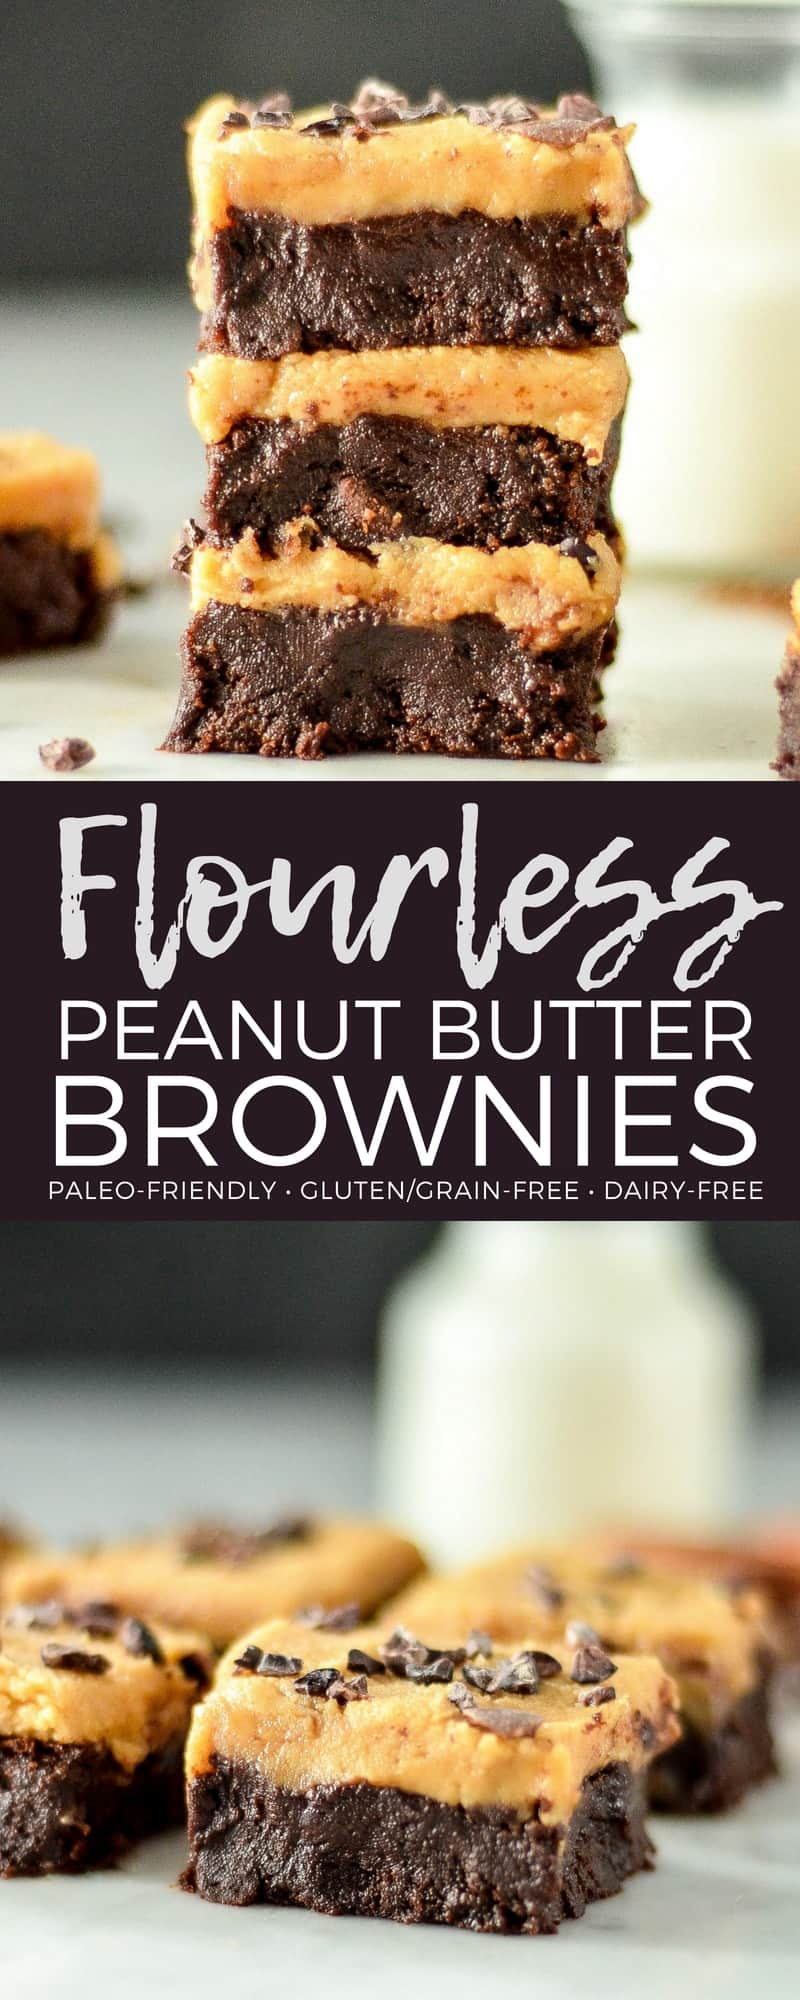 These Flourless Peanut Butter Brownies are made with only 9 ingredients that you probably already have in your pantry! They're ultra fudgy, super gooey and irresistibly chocolatey! Plus they're gluten-free, dairy-free and refined sugar free! The perfect healthier dessert for chocolate peanut butter lovers! #brownies #peanutbutter #flourless #glutenfree #grainfree #healthydessert